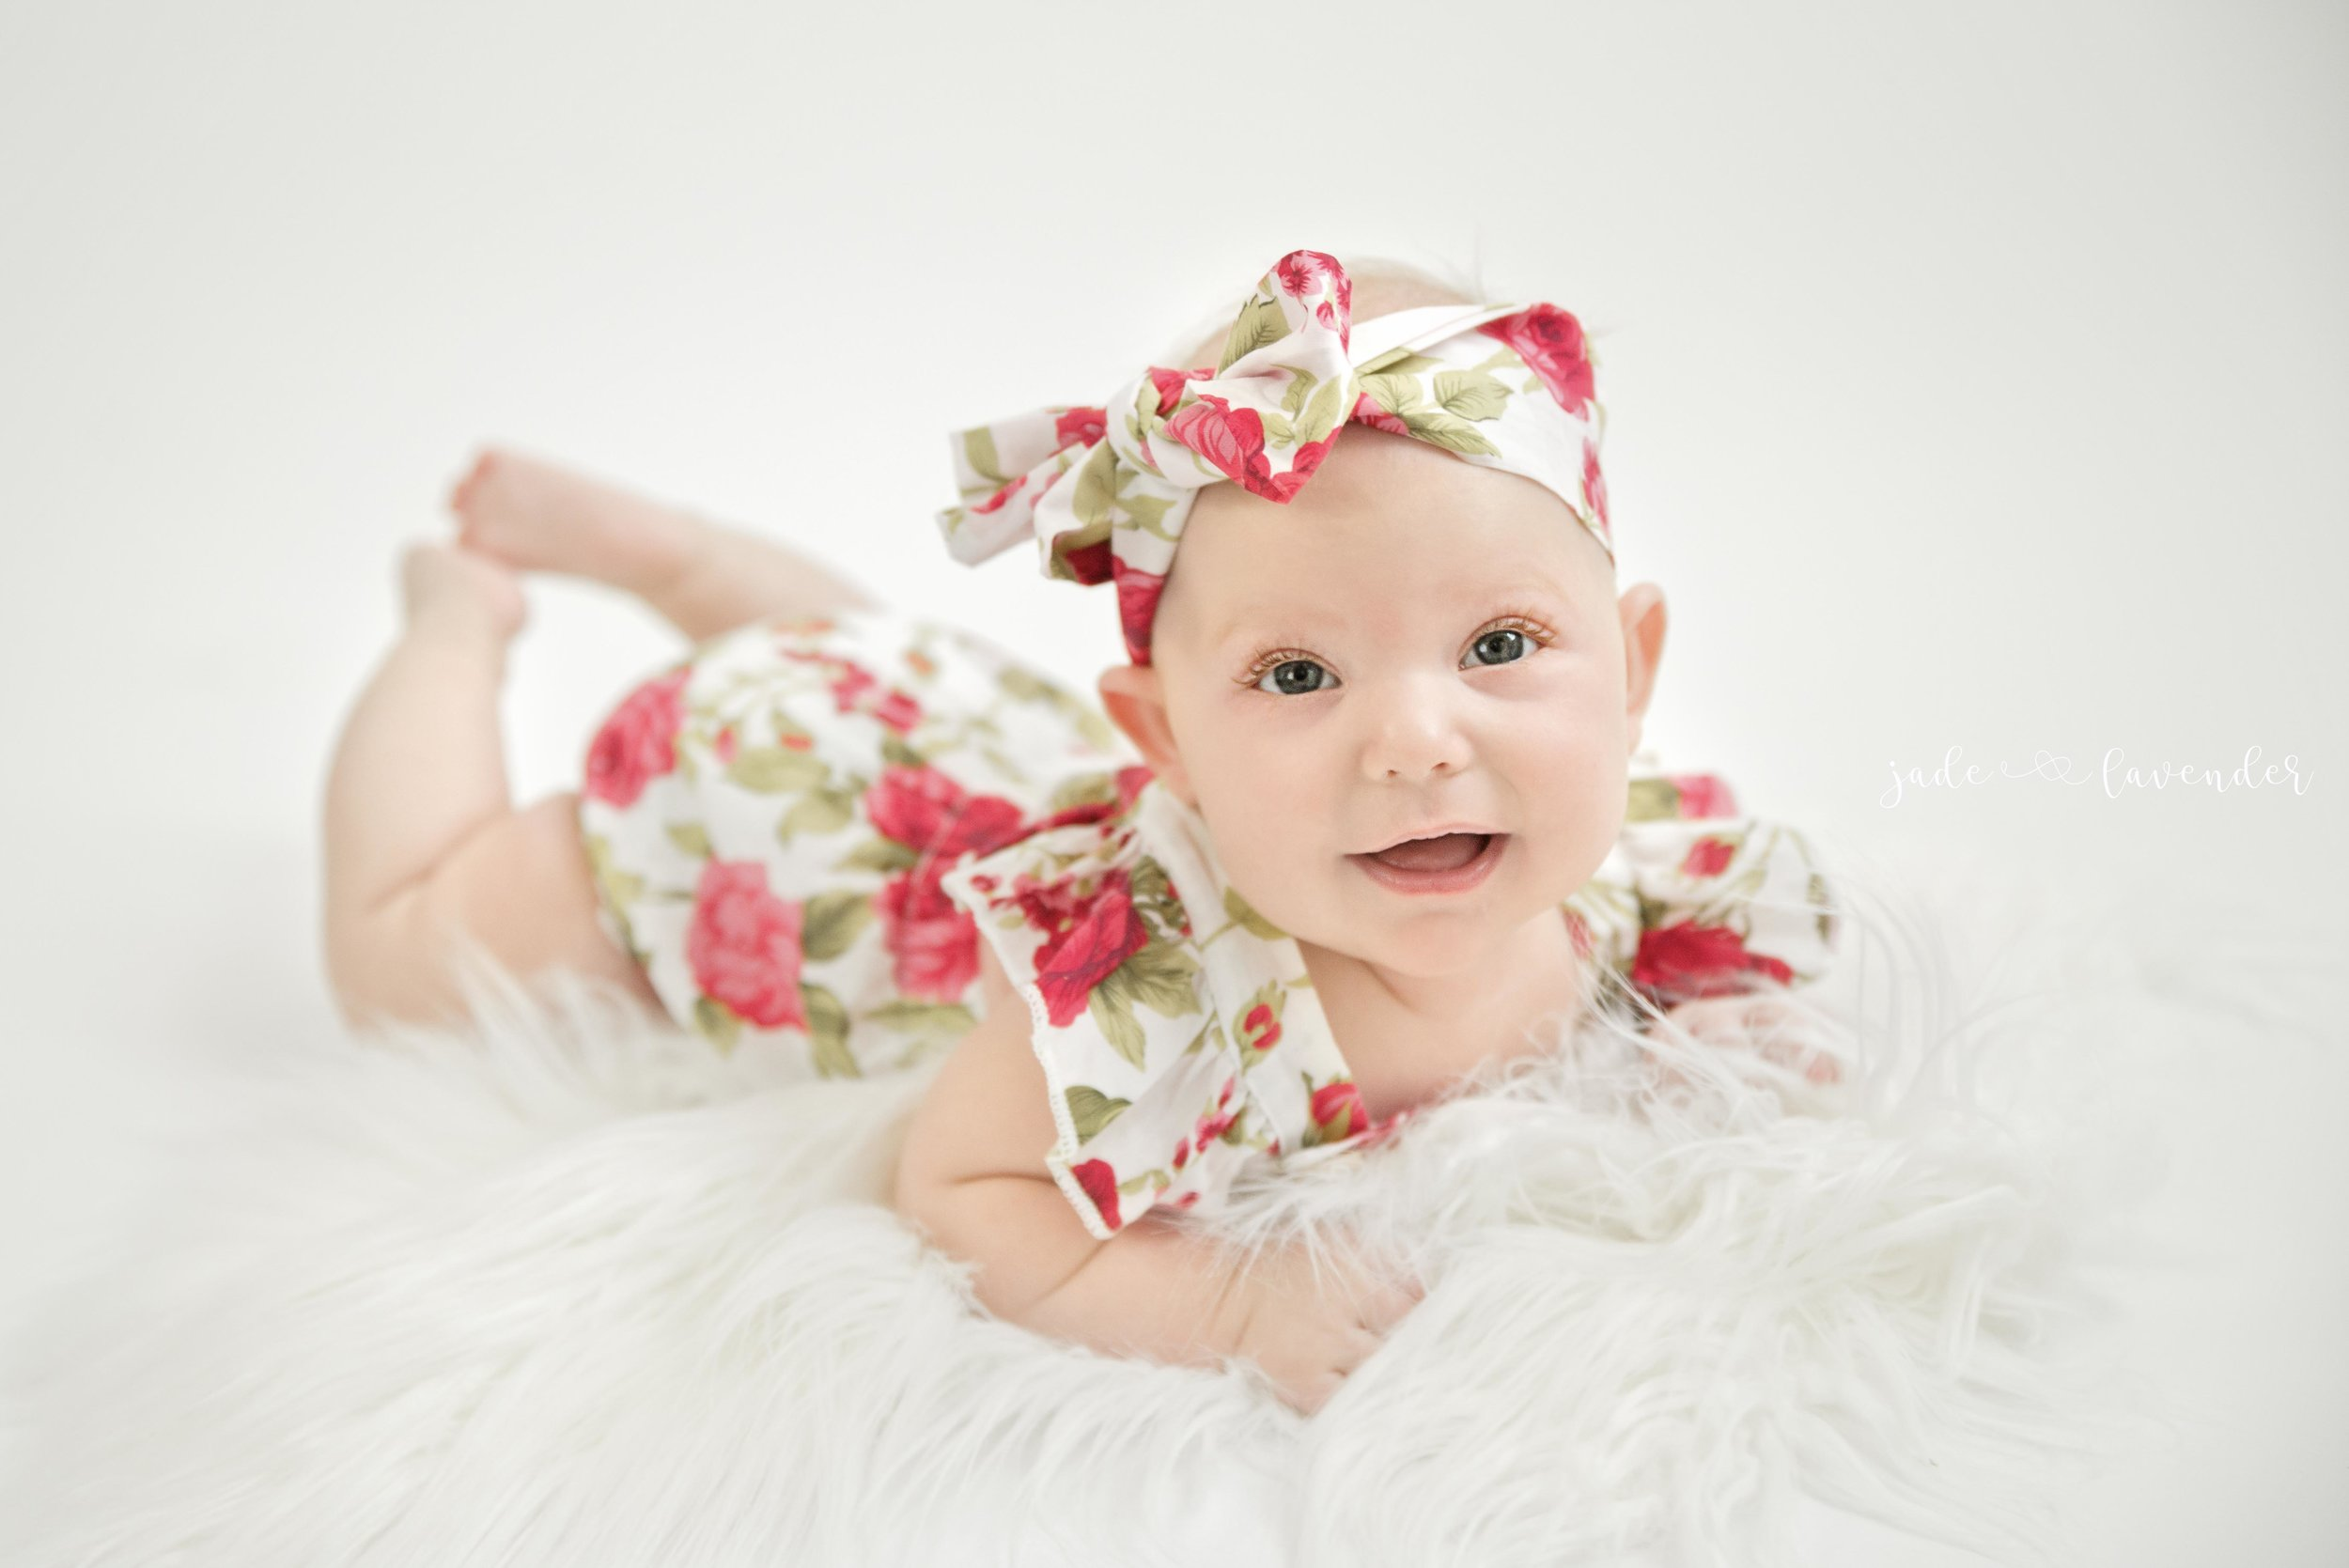 baby-pictures-milestone-photography-cute-infant.jpg